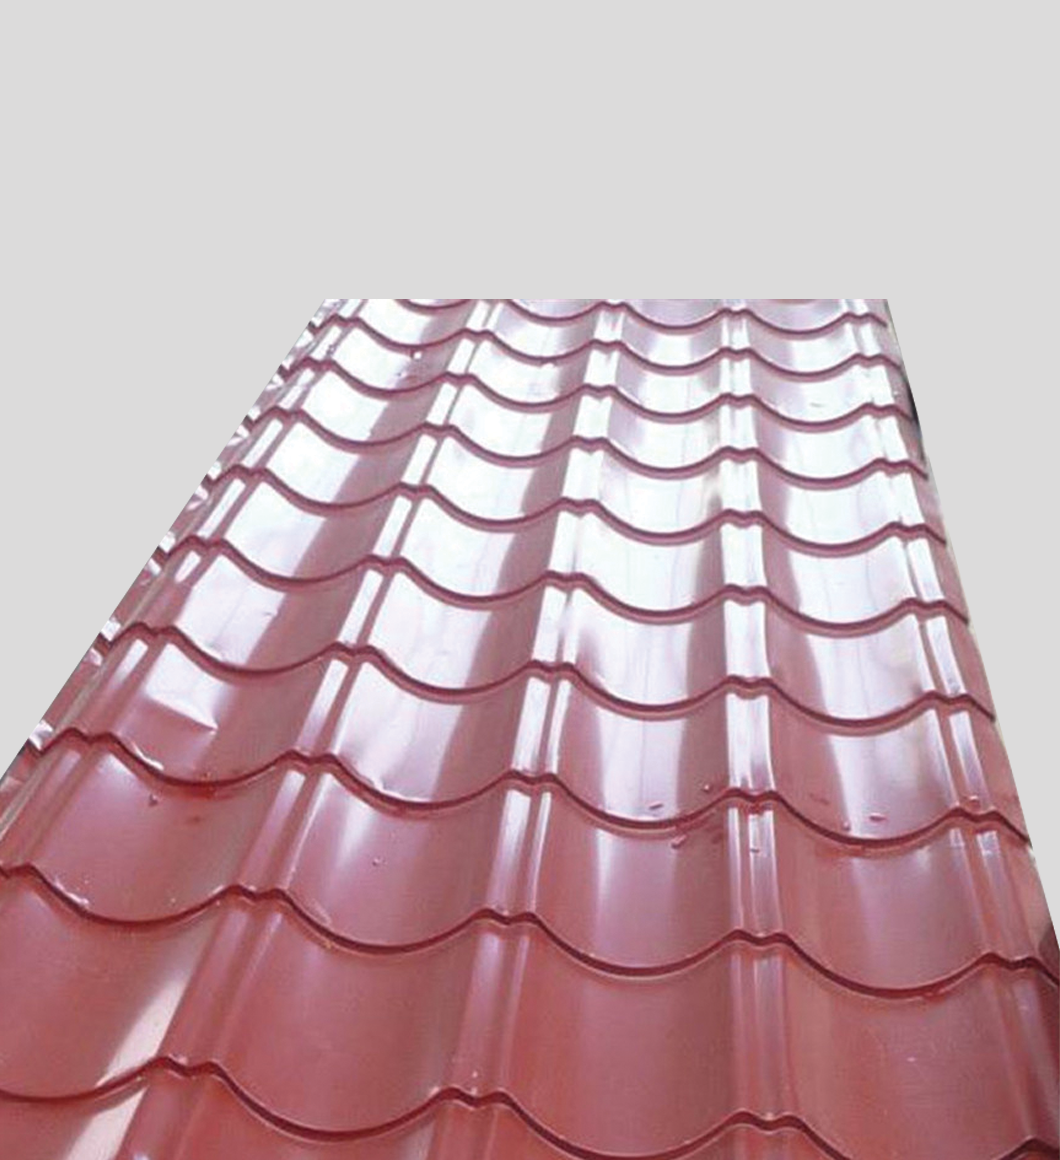 Bingwa Tile Glossy Finish, Gauge 28, 1M